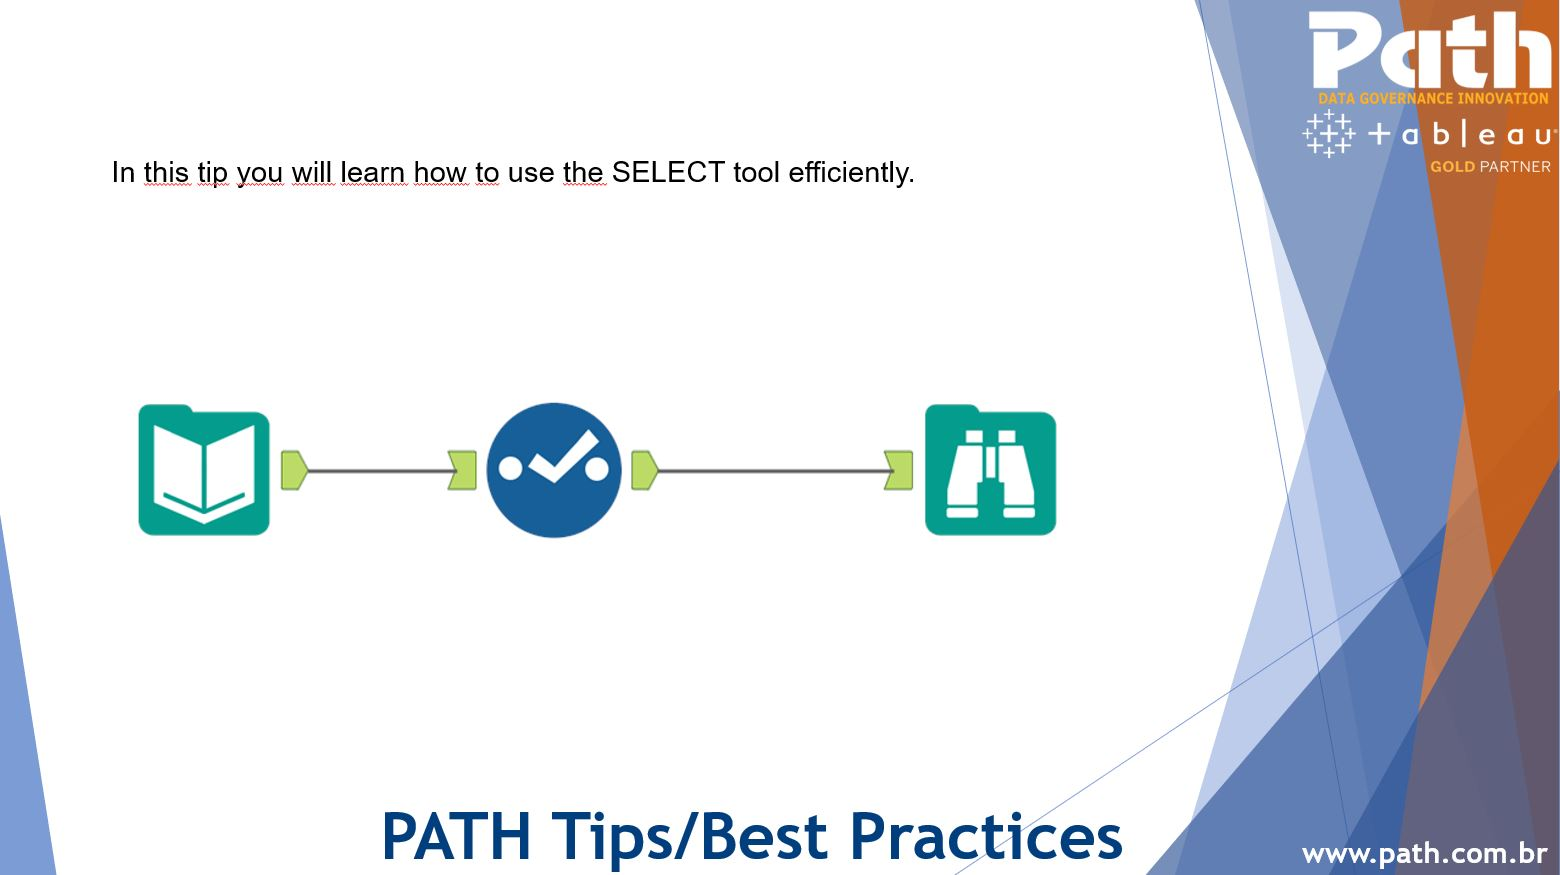 PATH | Alteryx Tips  – Three tips to use the SELECT tool efficiently